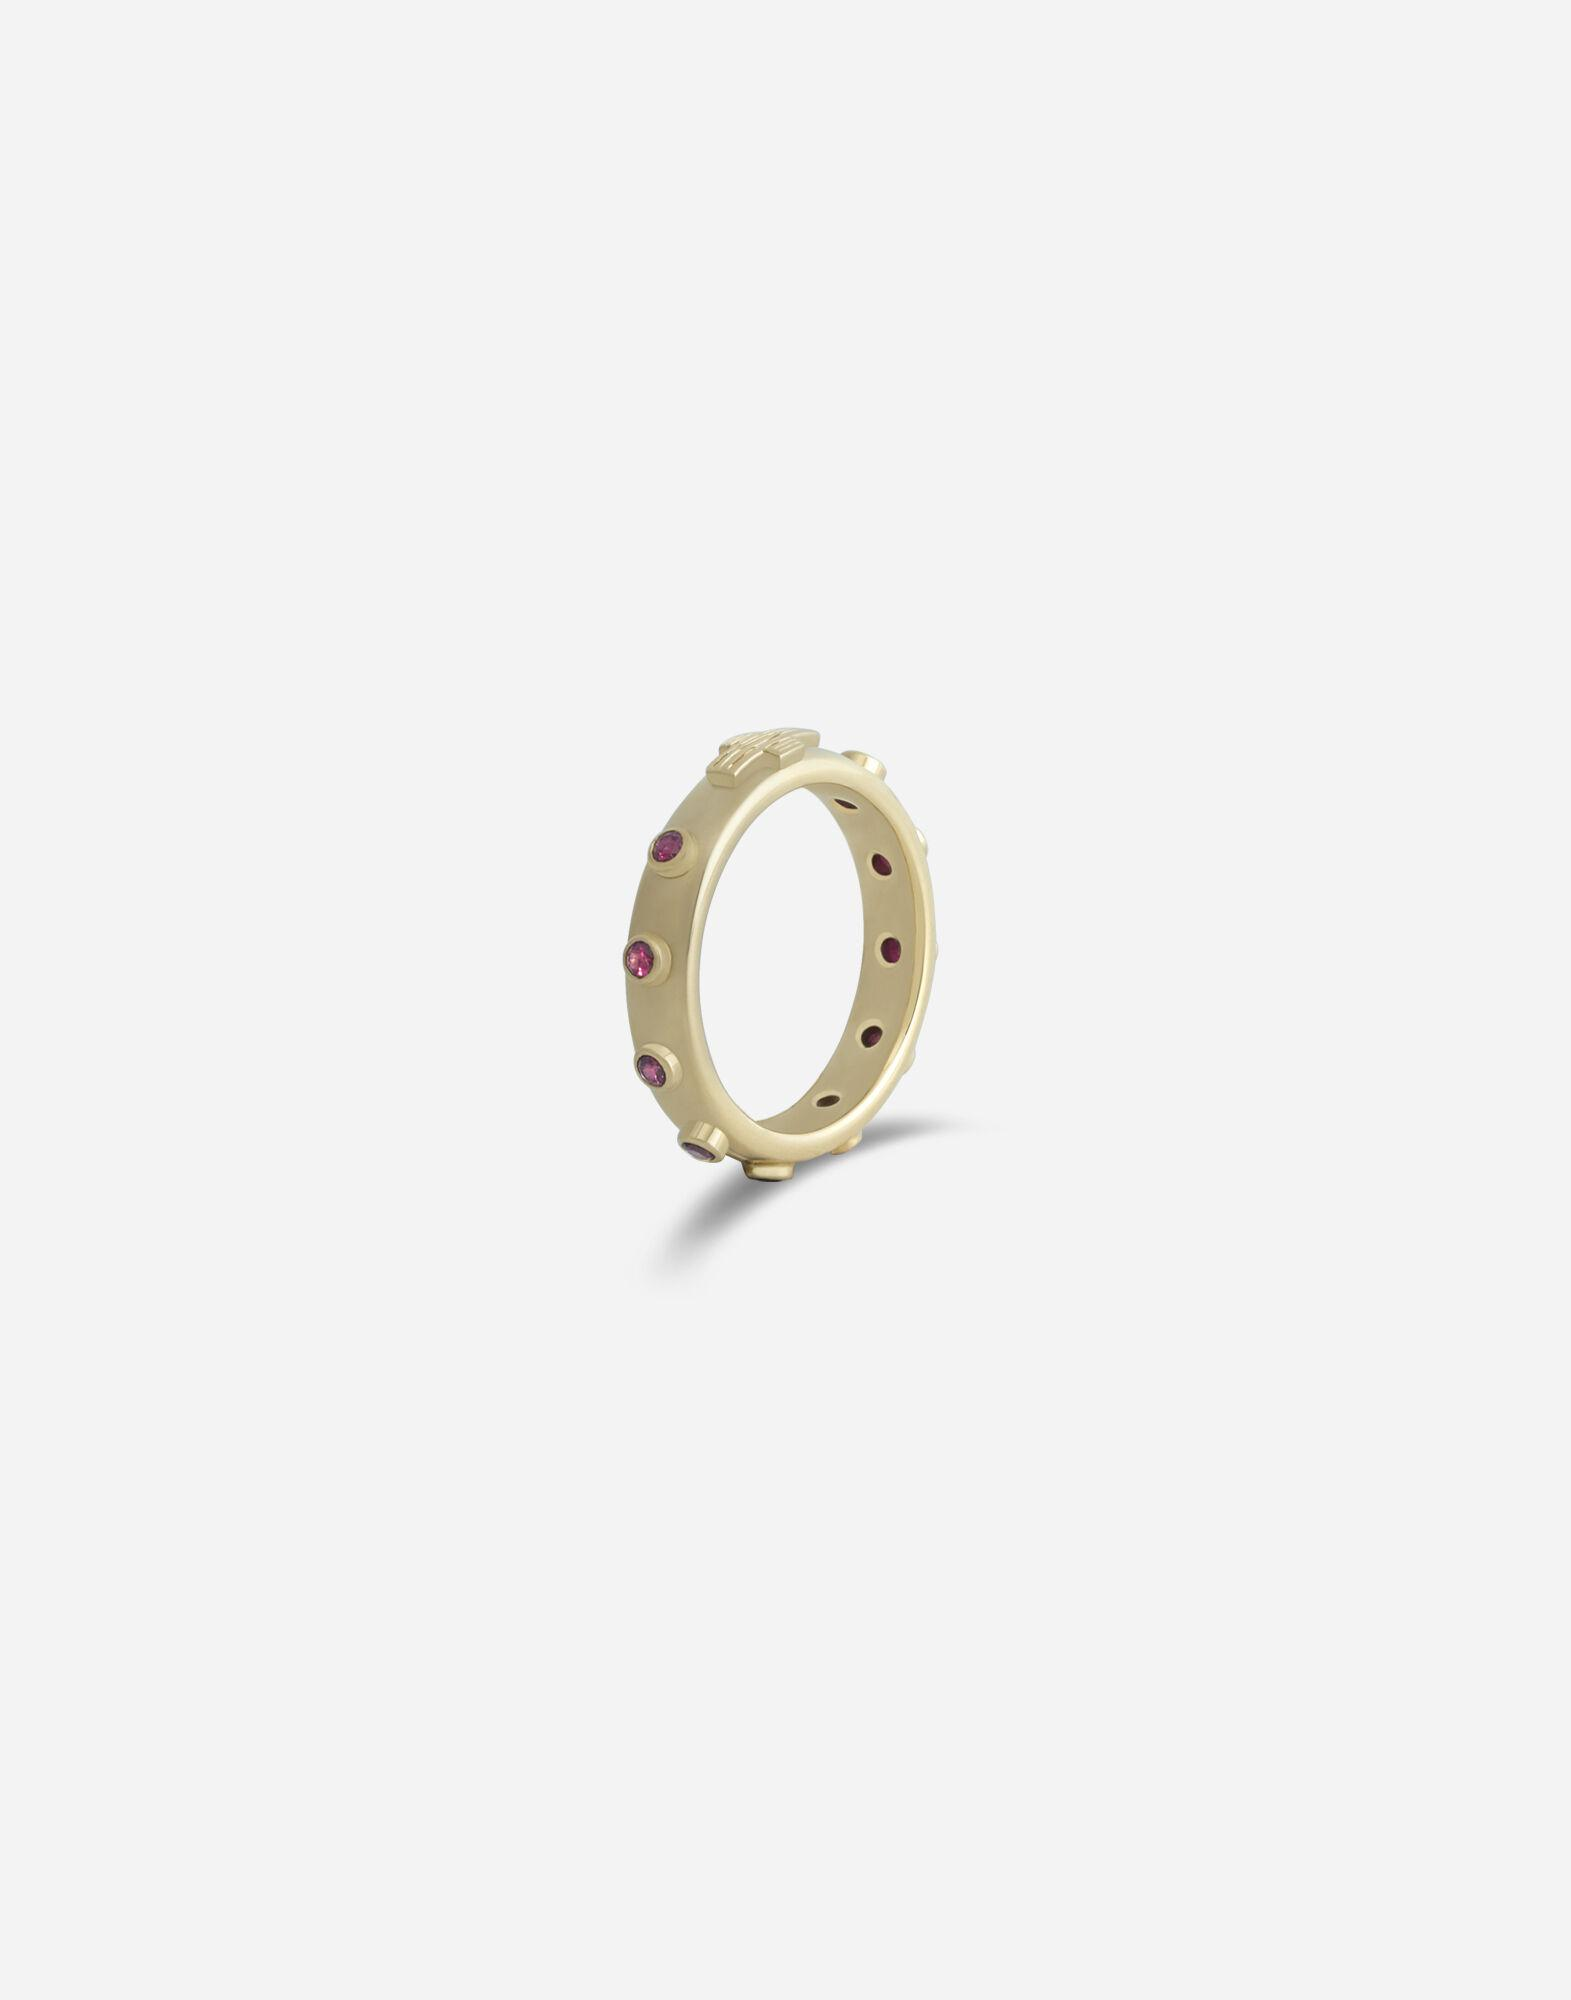 Devotion band in yellow gold with rubies 1